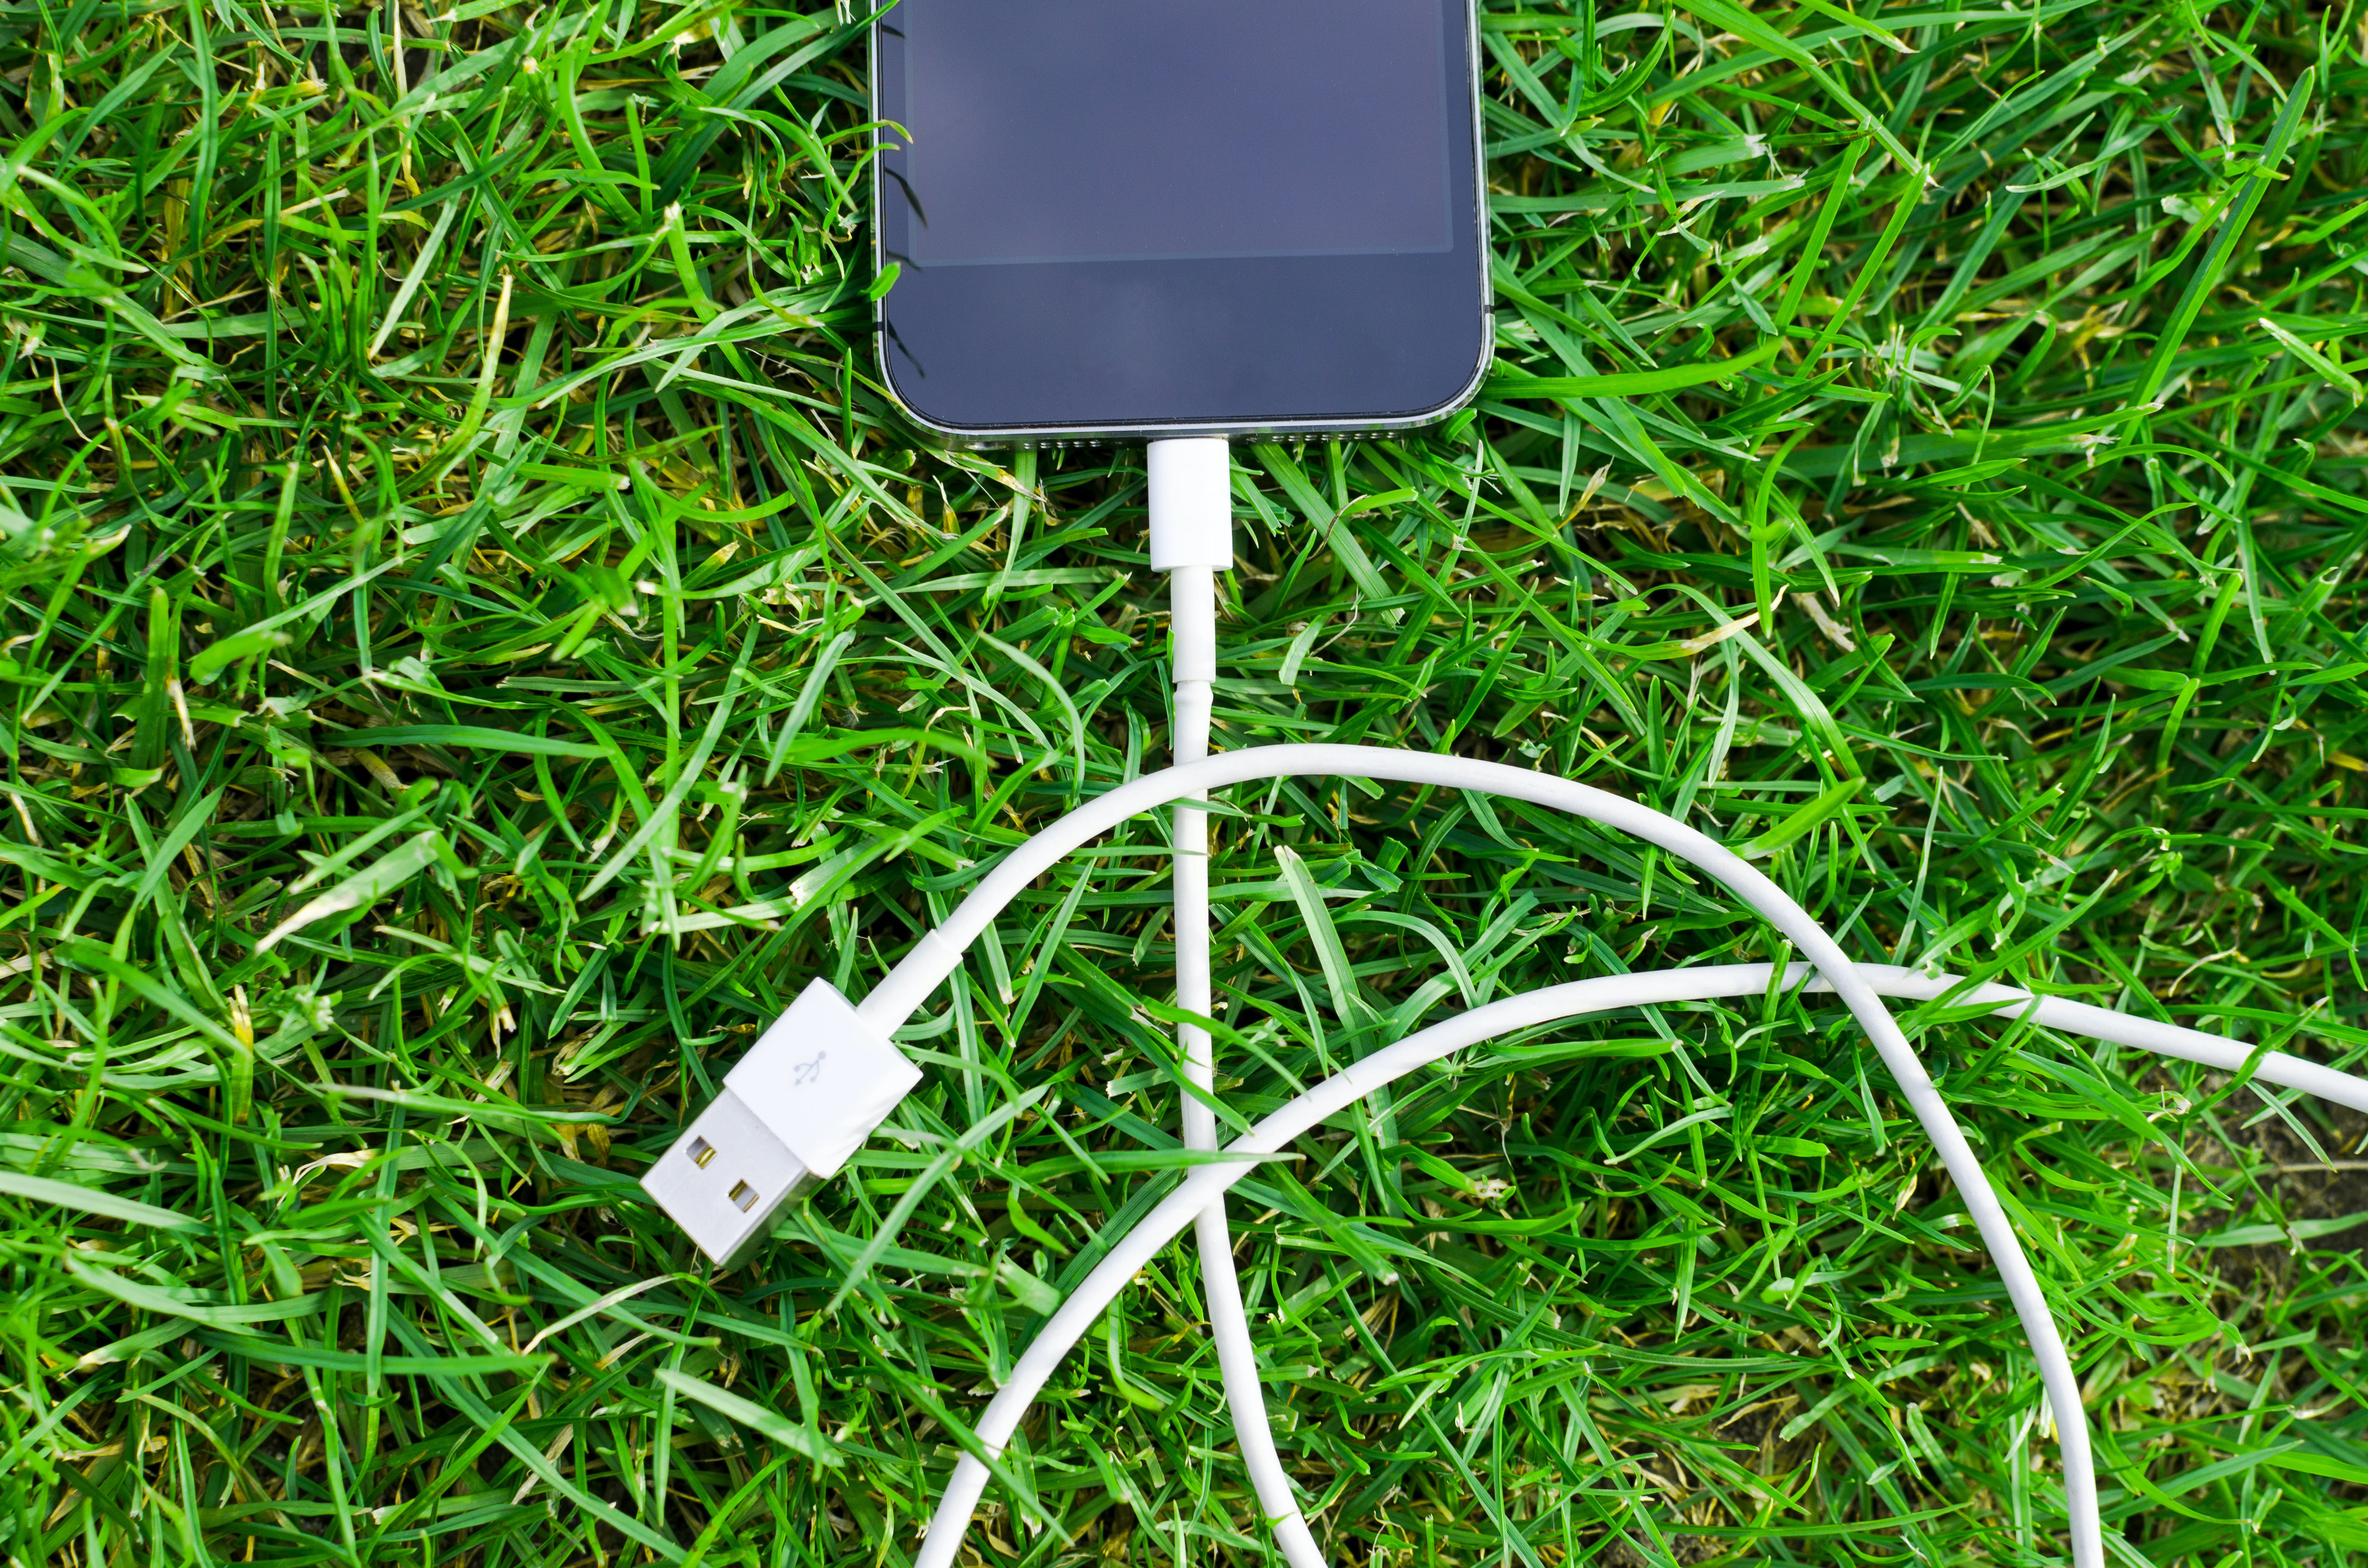 Free stock photo of cable, connection, grass, technology